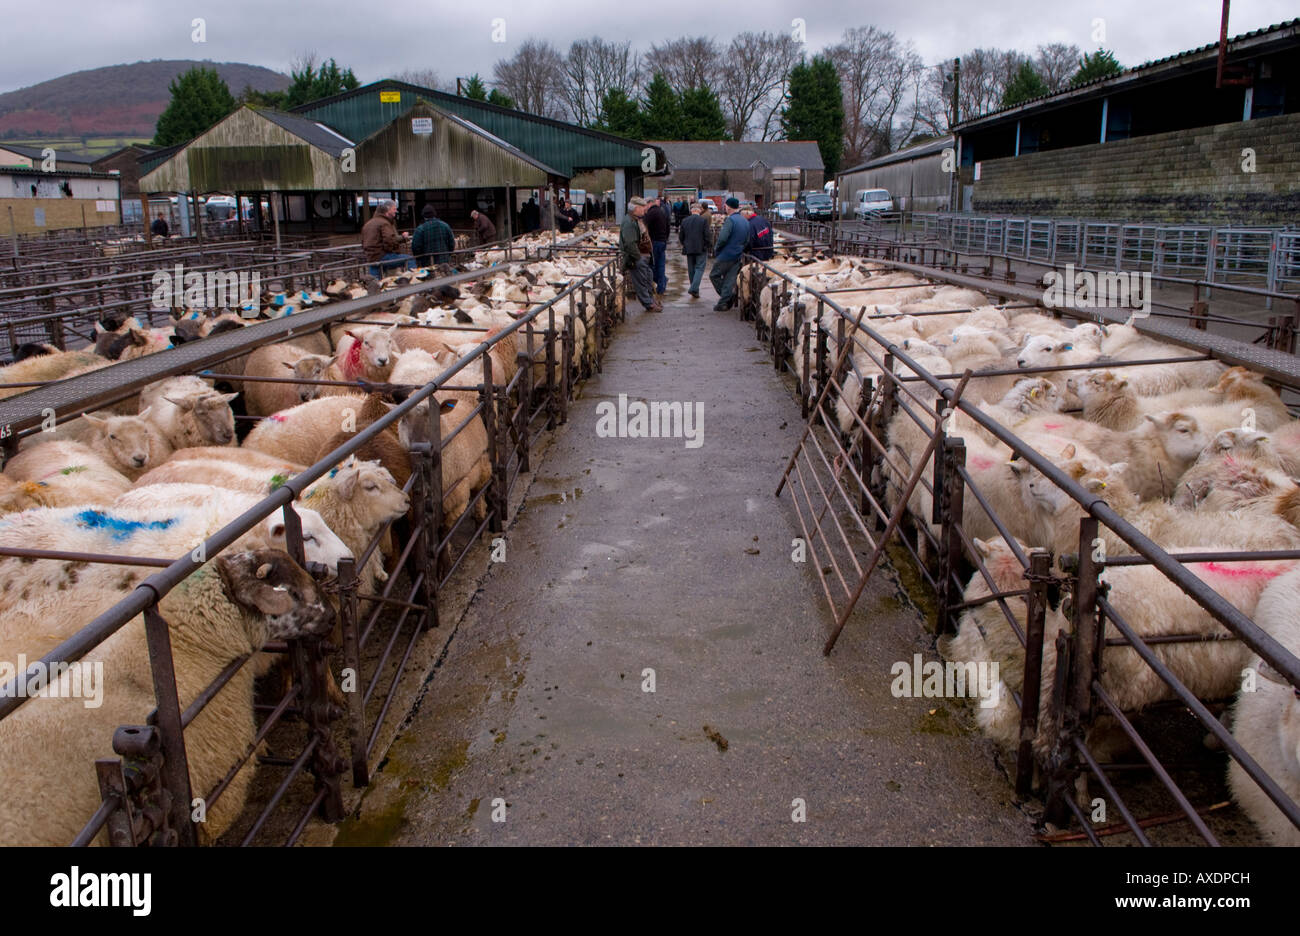 Animal Auction Stock Photos & Animal Auction Stock Images - Alamy